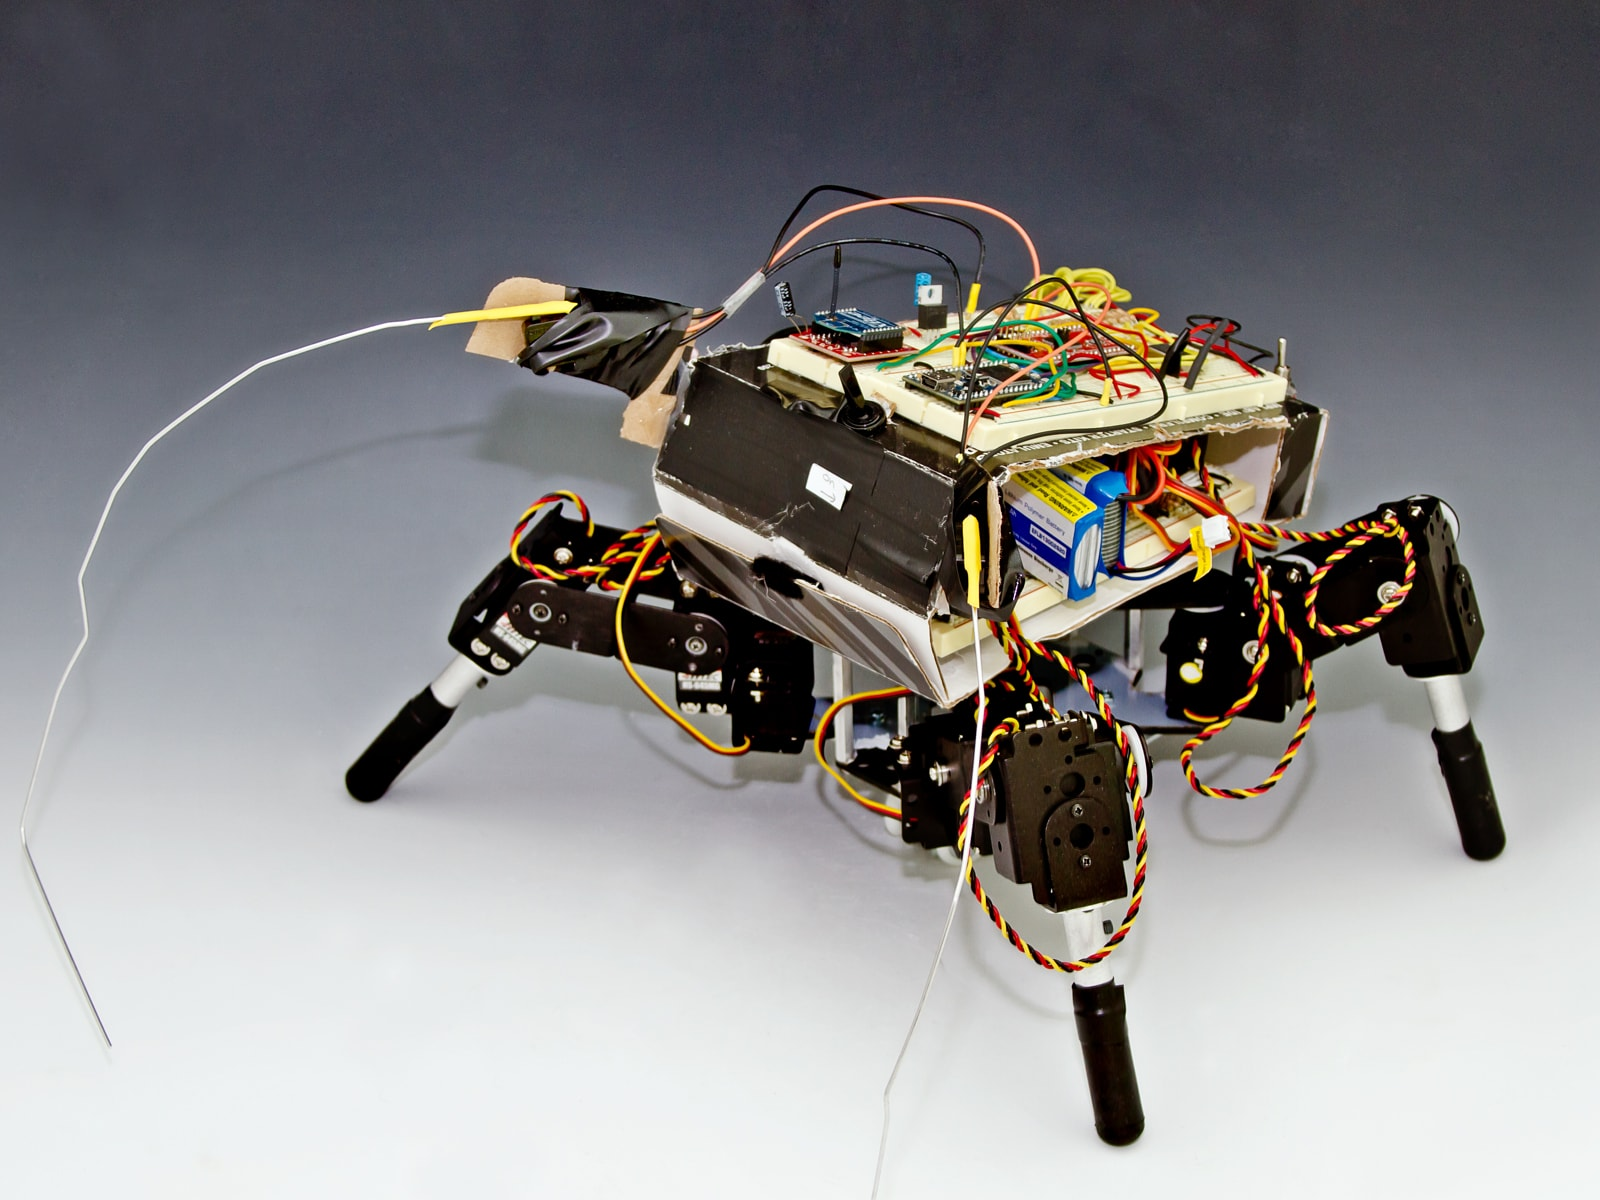 A four-legged robot with exposed wiring and circuitry.